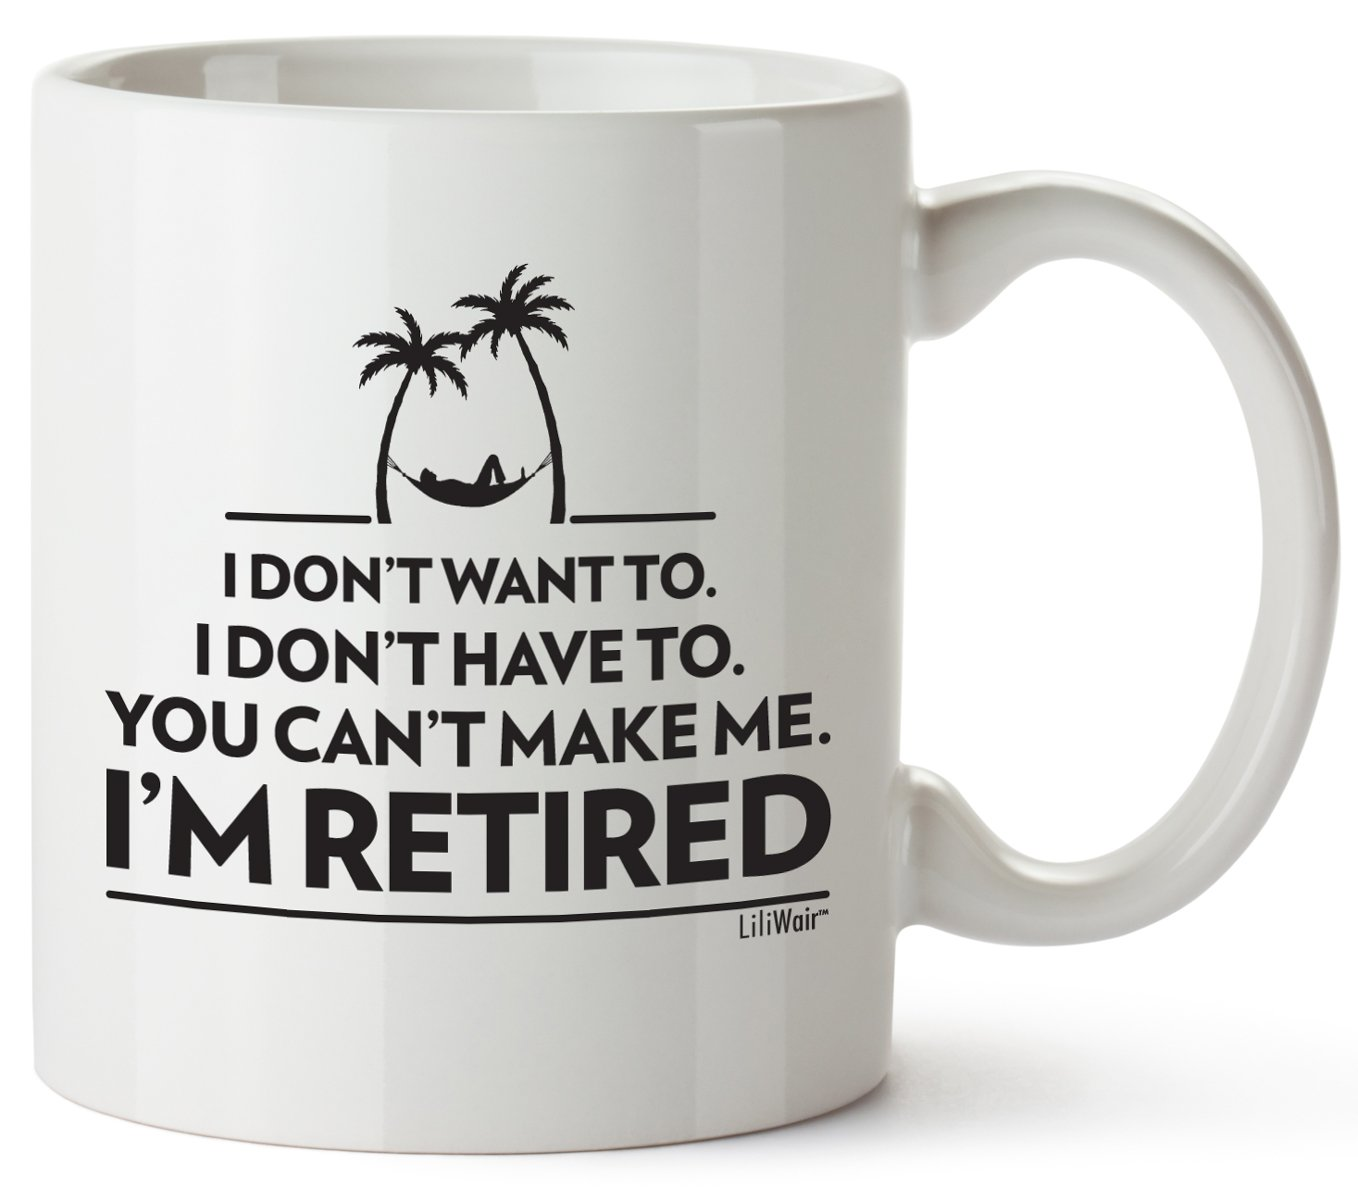 Funny Retirement Gifts Gag for Women Men Dad Mom Valentines Day Husband Wife Boyfriend Humorous Retirement  sc 1 st  Amazon.com & Fun Retirement Gifts: Amazon.com